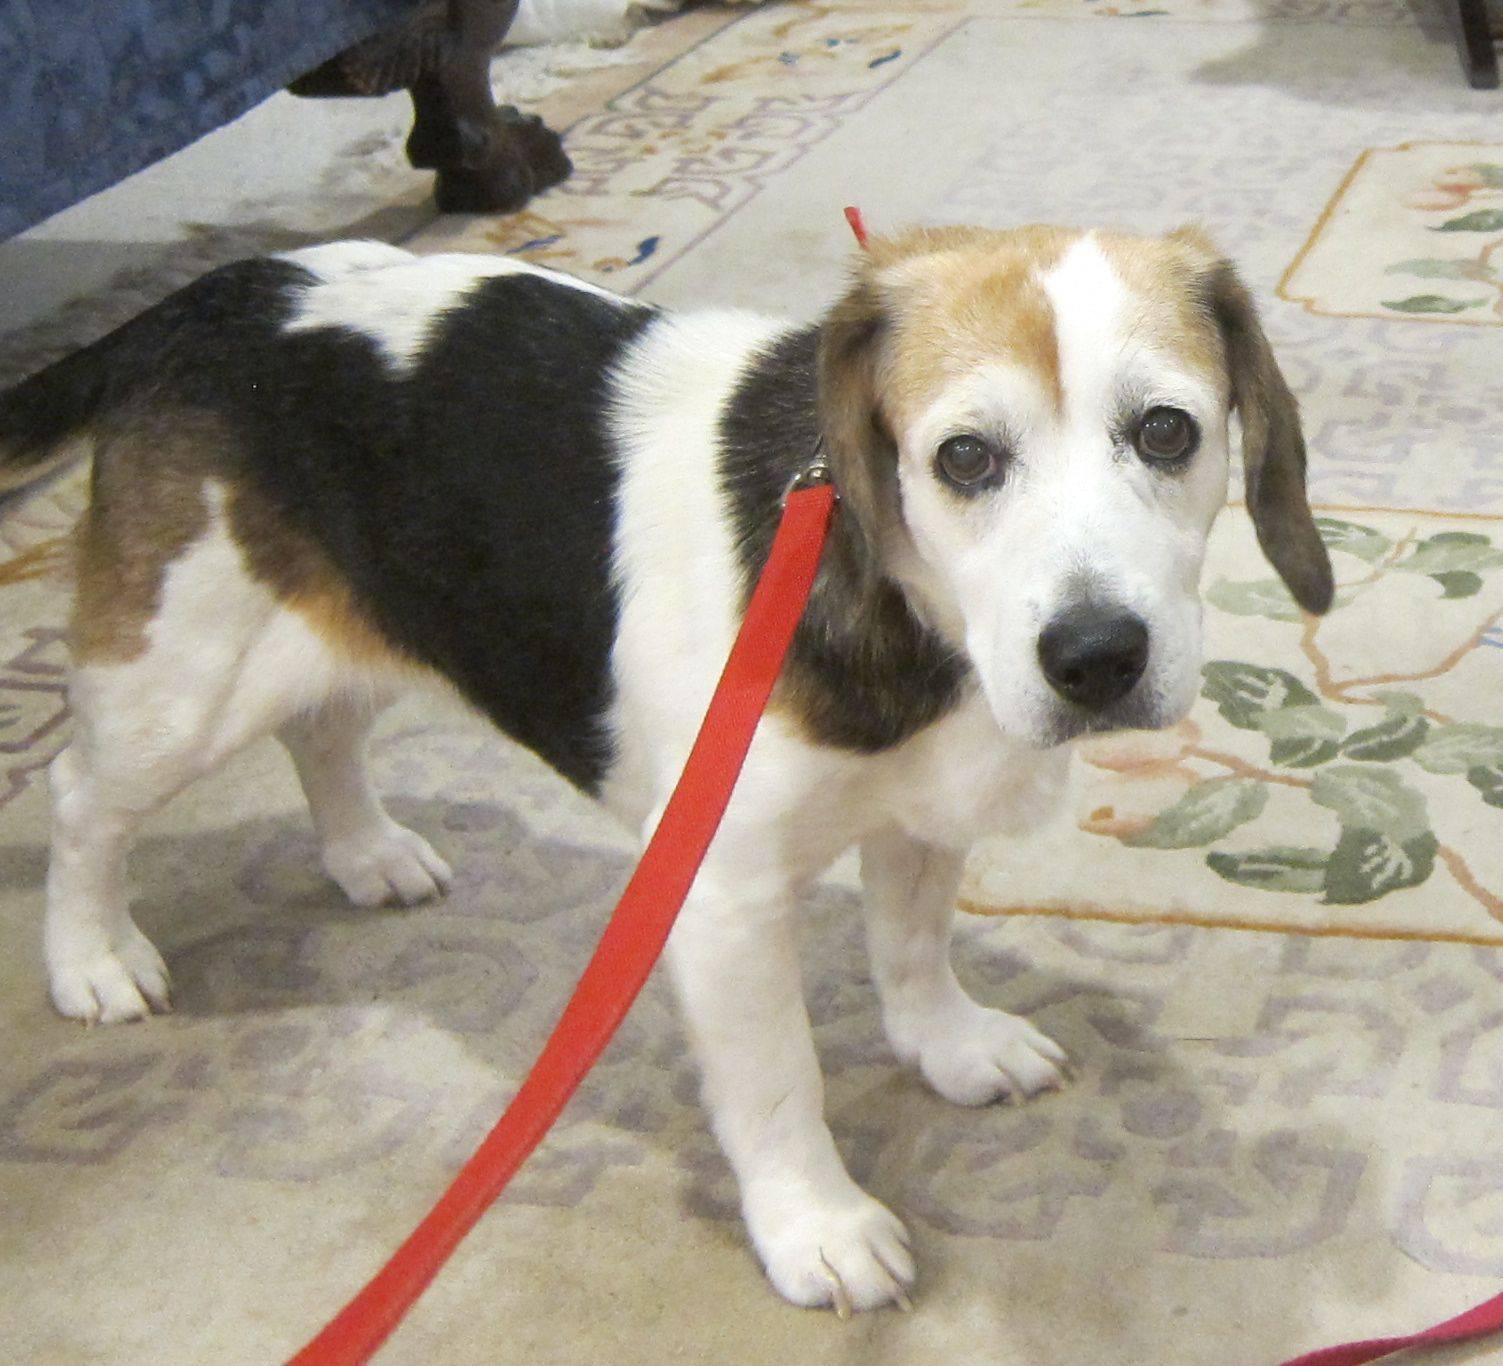 Beagle dog for Adoption in Tampa, FL. ADN677125 on